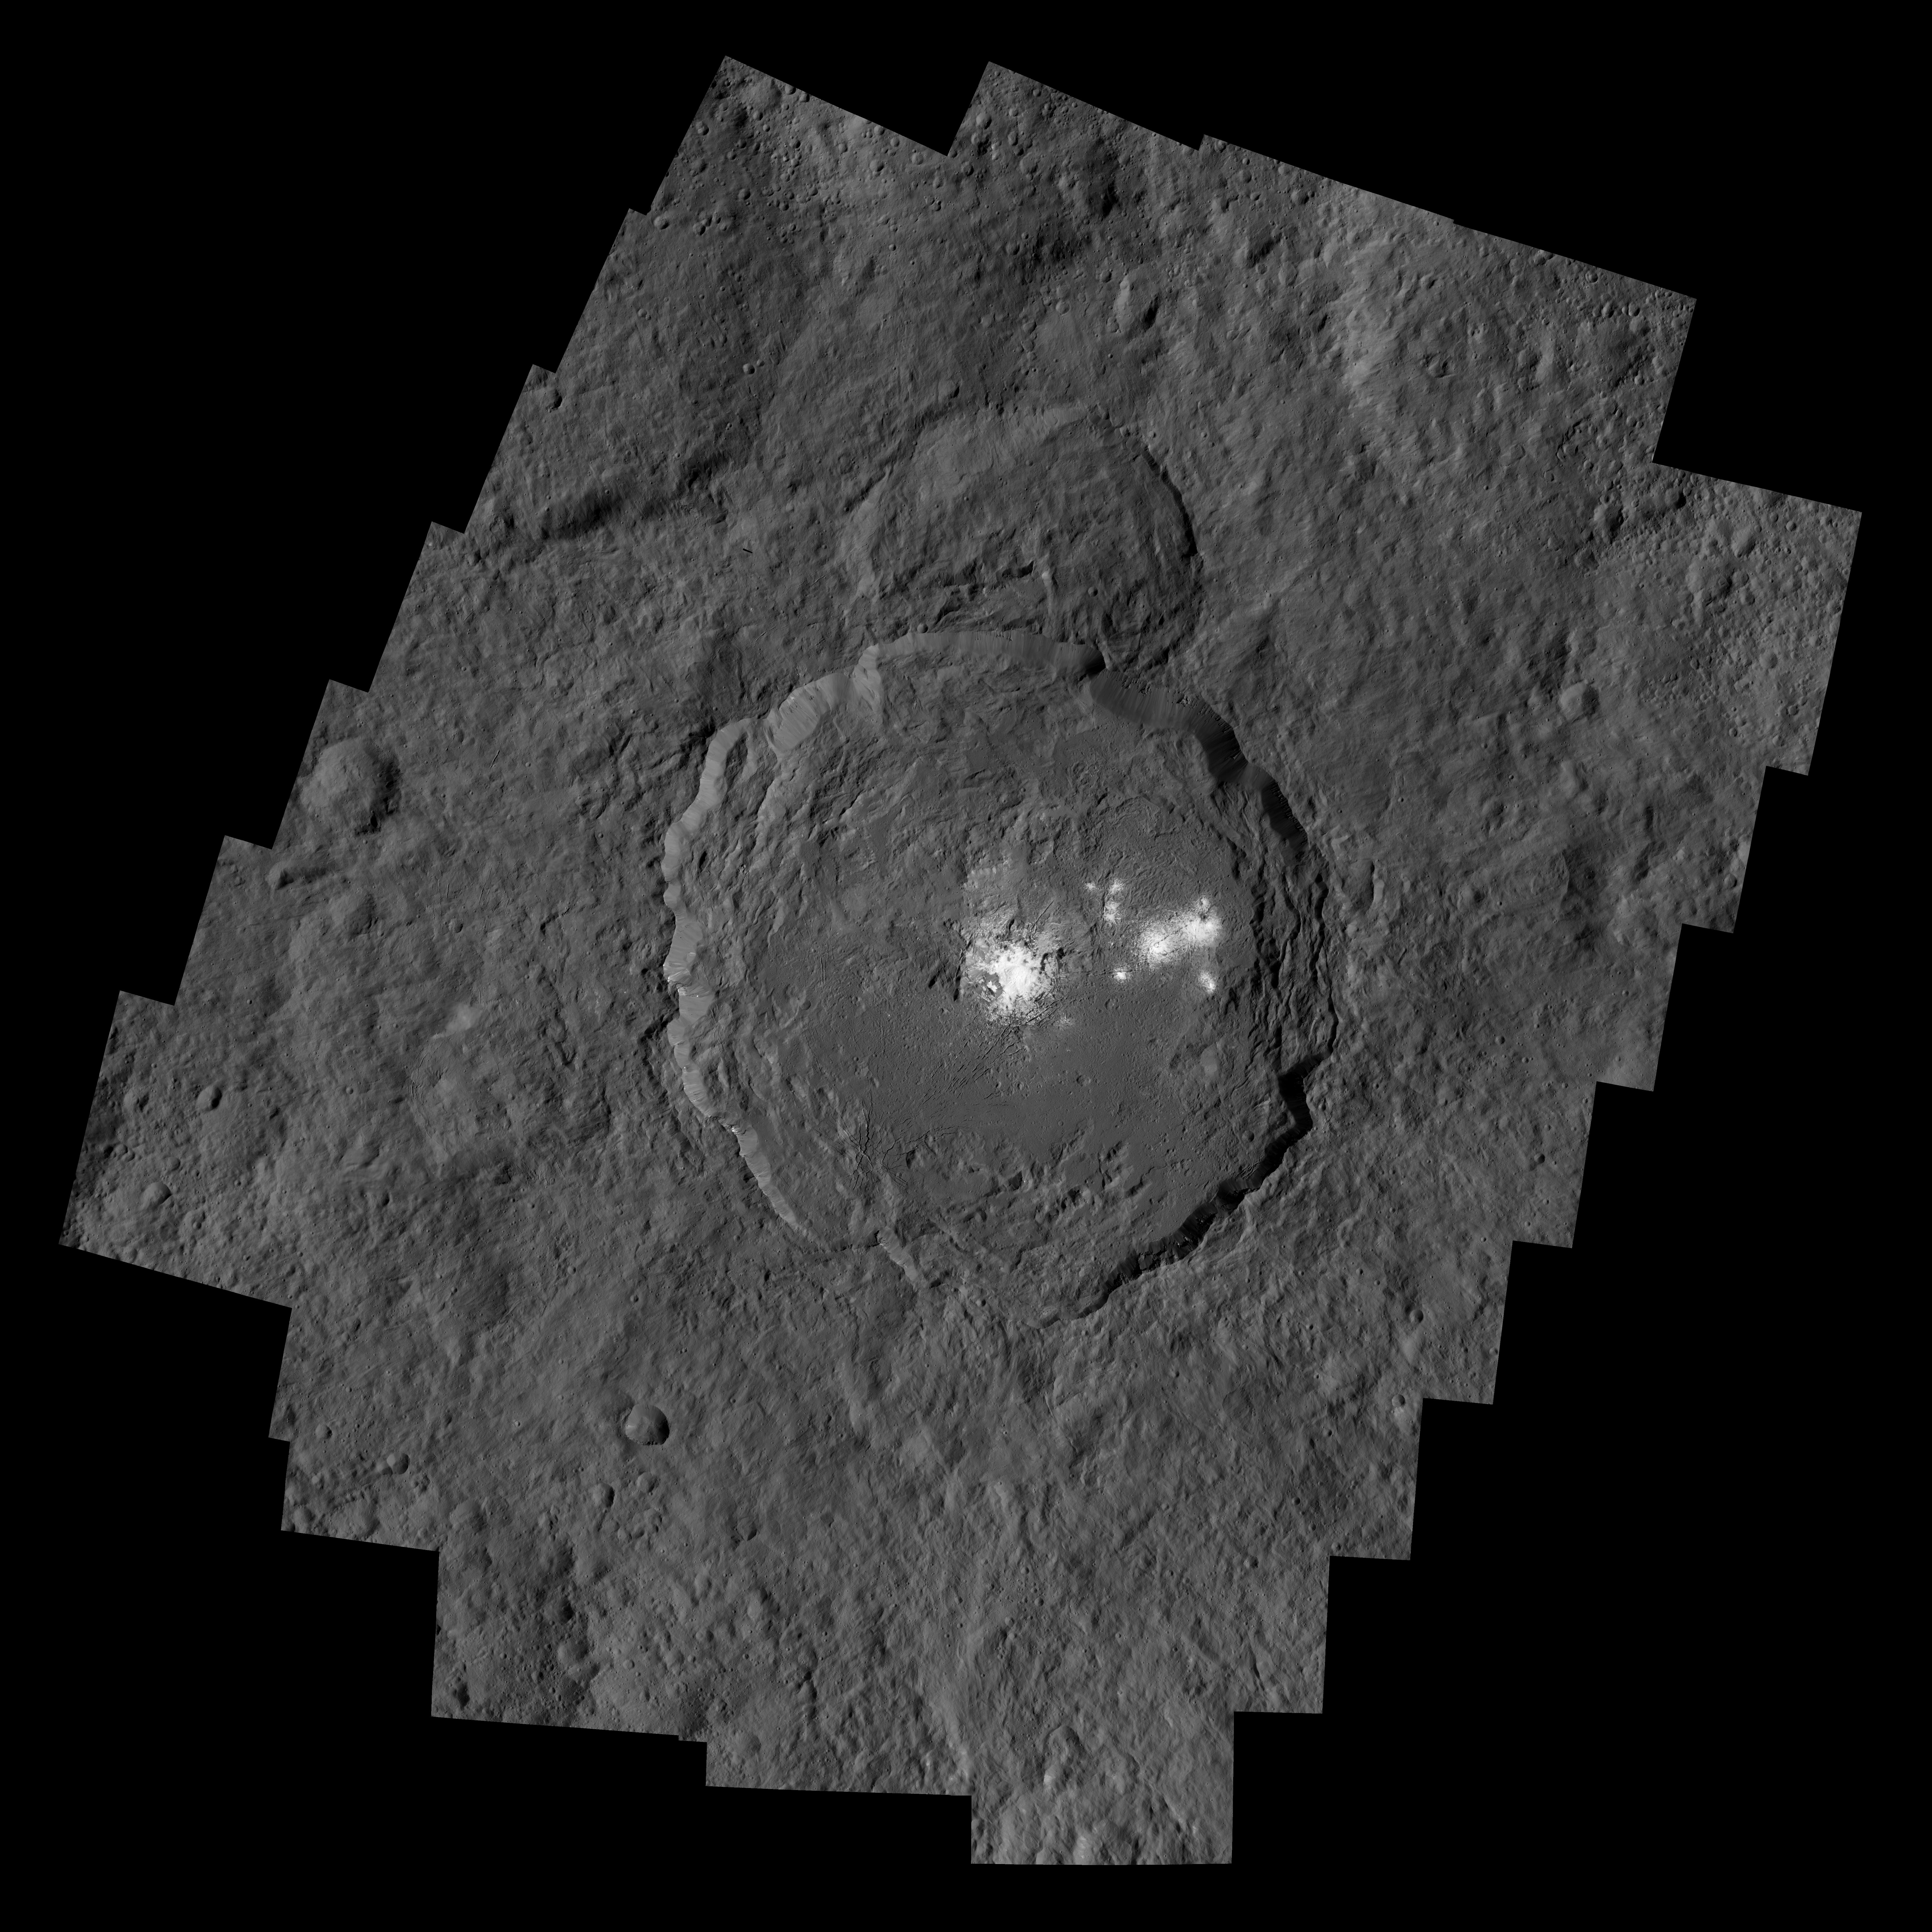 Caption: Occator Crater on dwarf planet Ceres, with its now less mysterious bright spots or areas., Credit: NASA/JPL-Caltech/UCLA/MPS/DLR/IDA/PSI